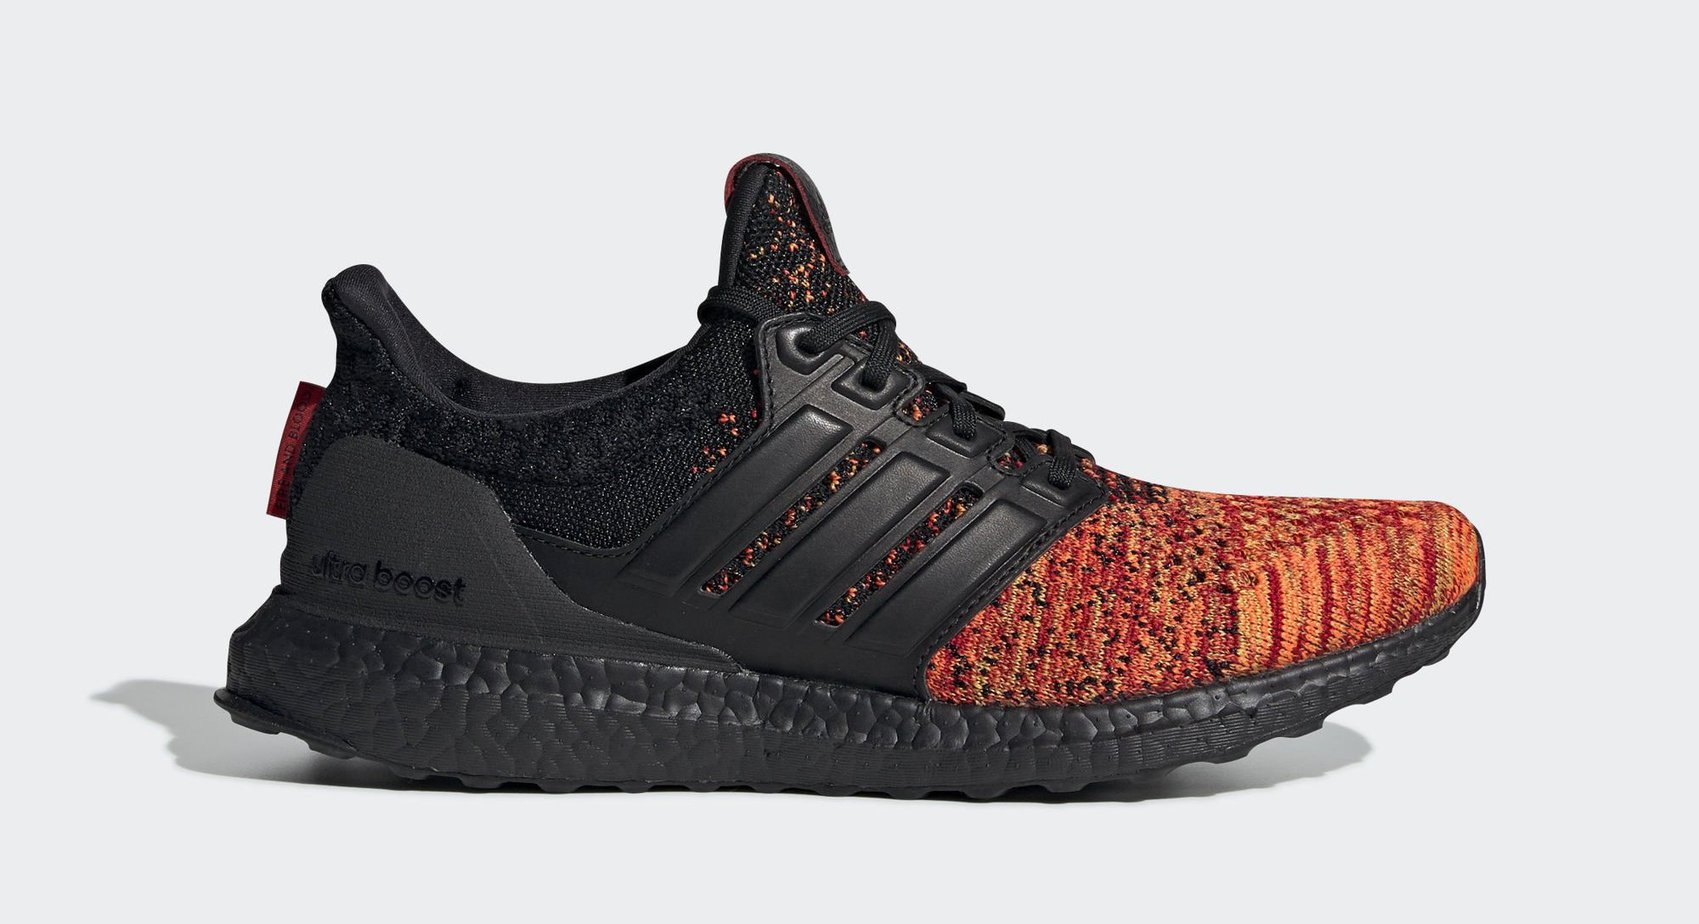 "f9a8f3d0e1a7a GOT x adidas Ultra Boost ""House Targaryen"" Core Black Core Black Scarlet  Red March 22"